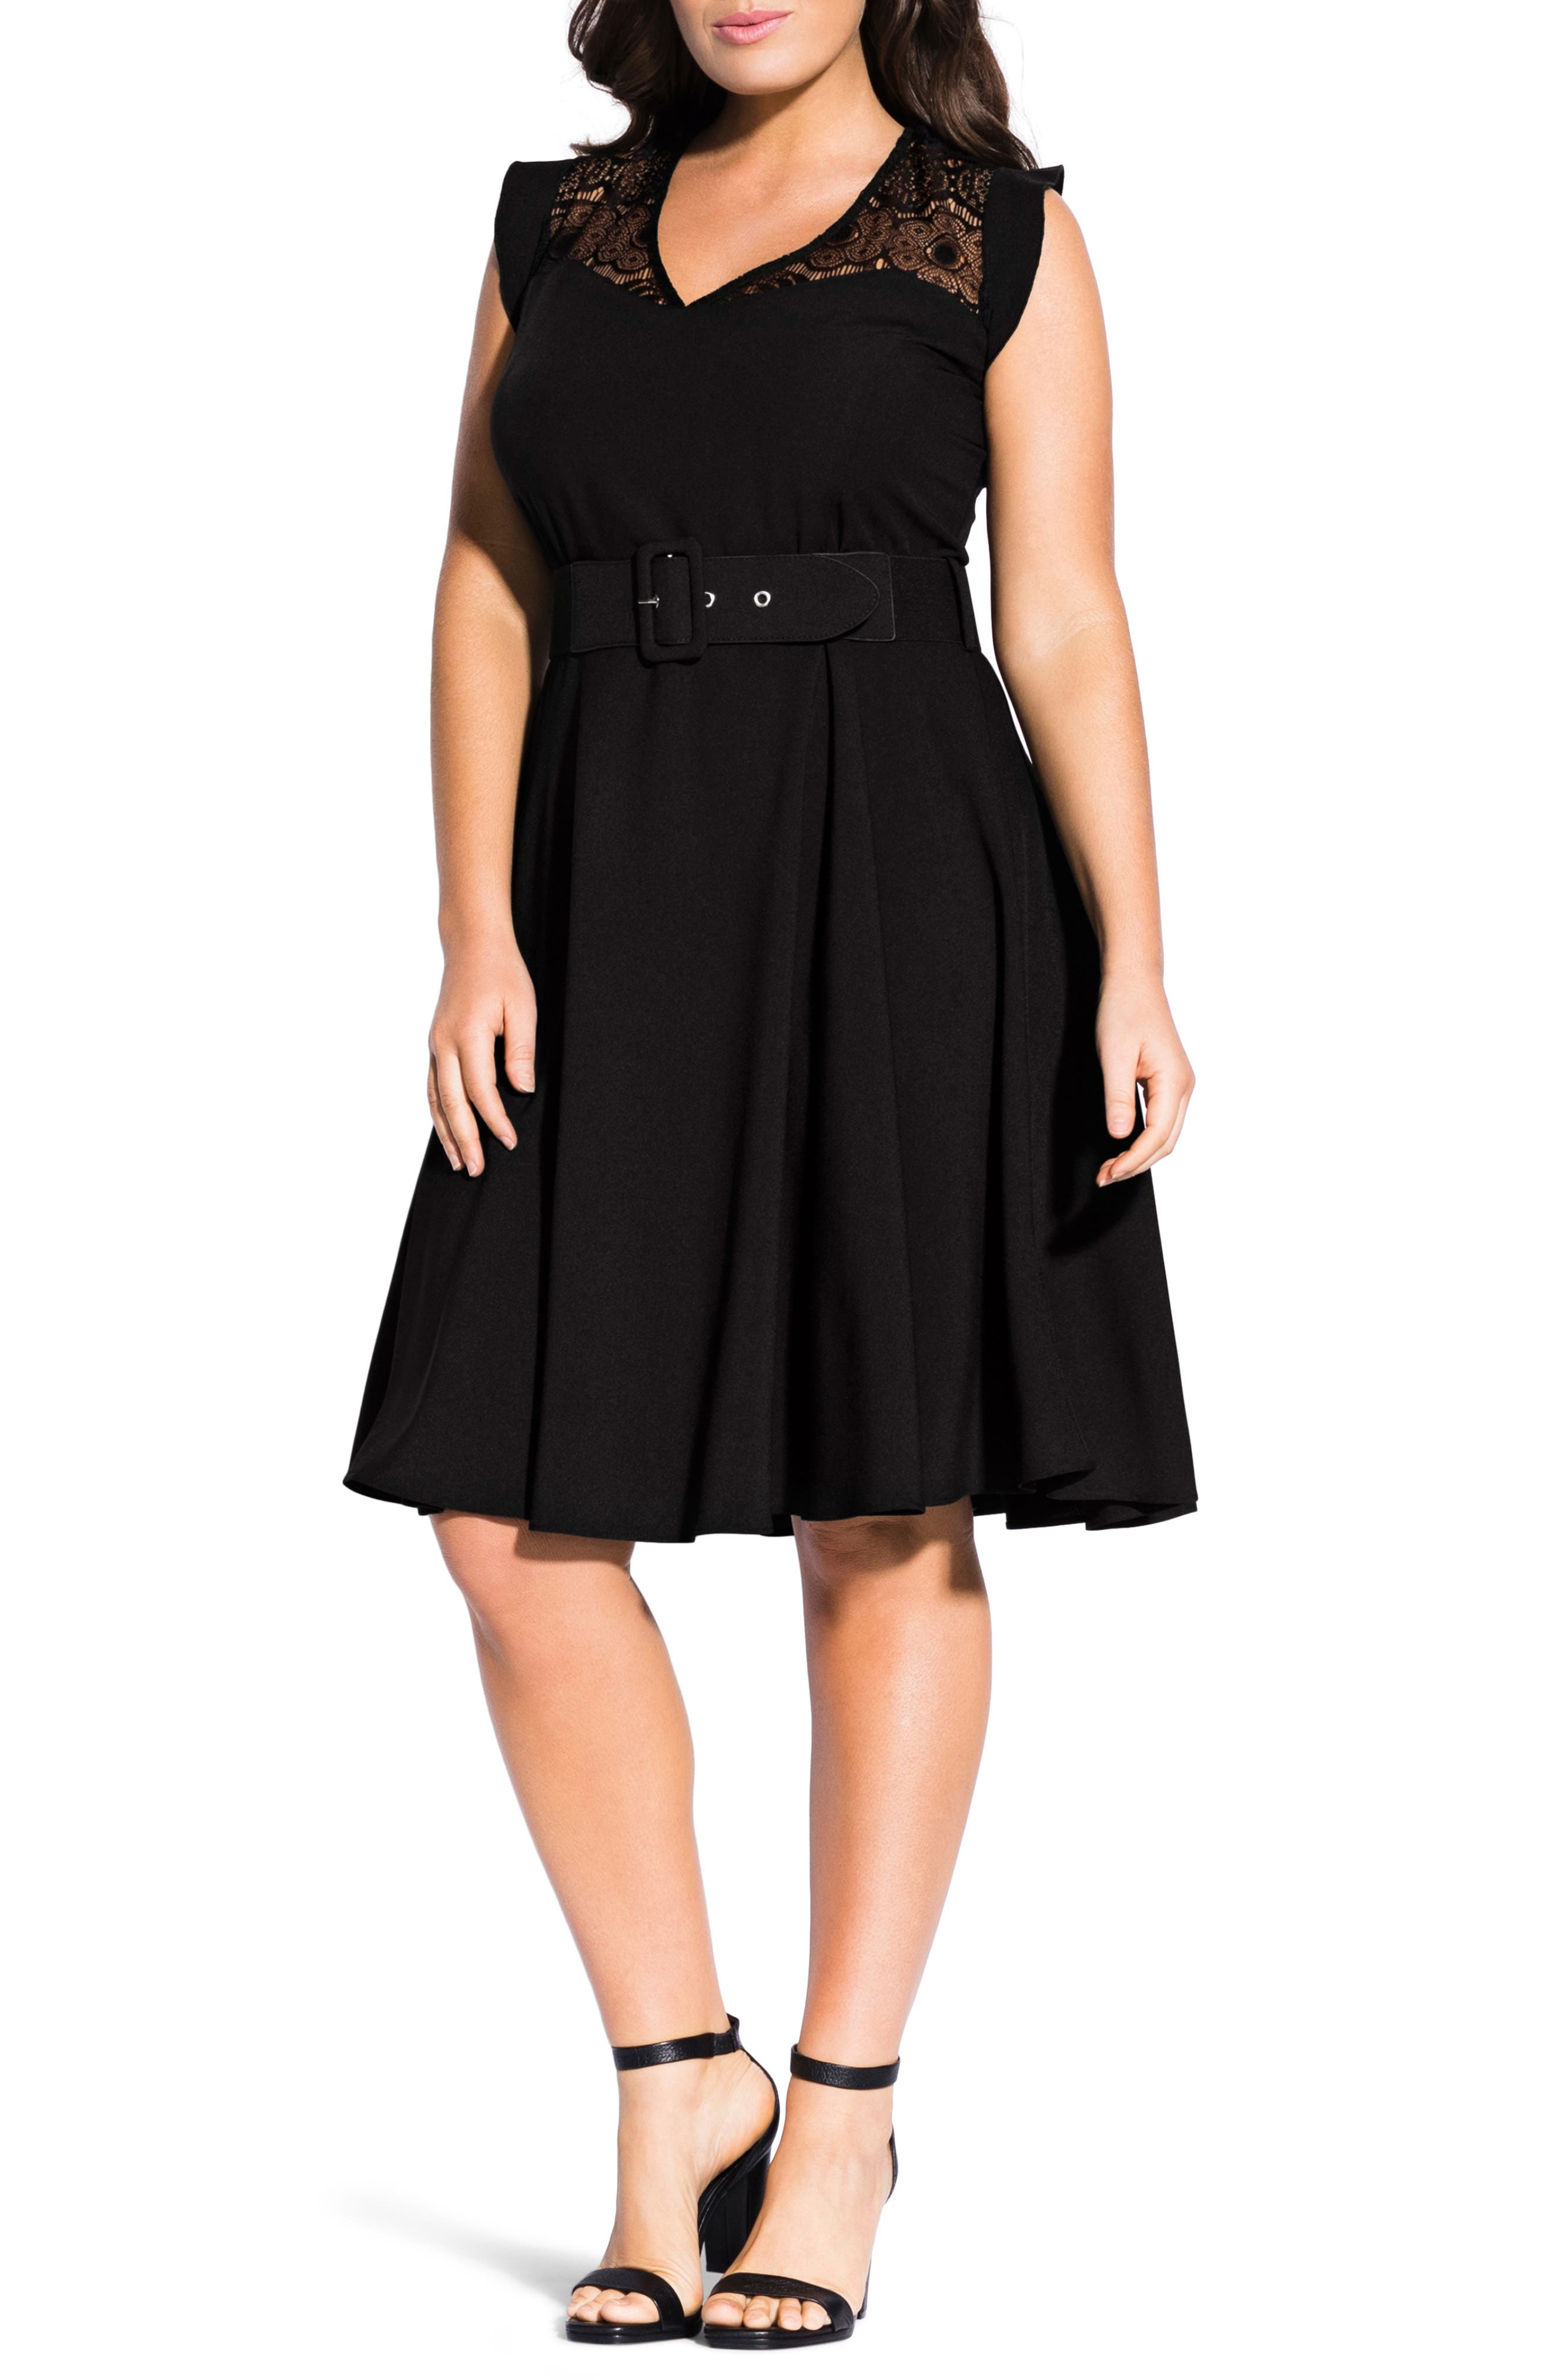 CITY CHIC, Lace Yoke Fit & Flare Dress, Main thumbnail 1, color, BLACK